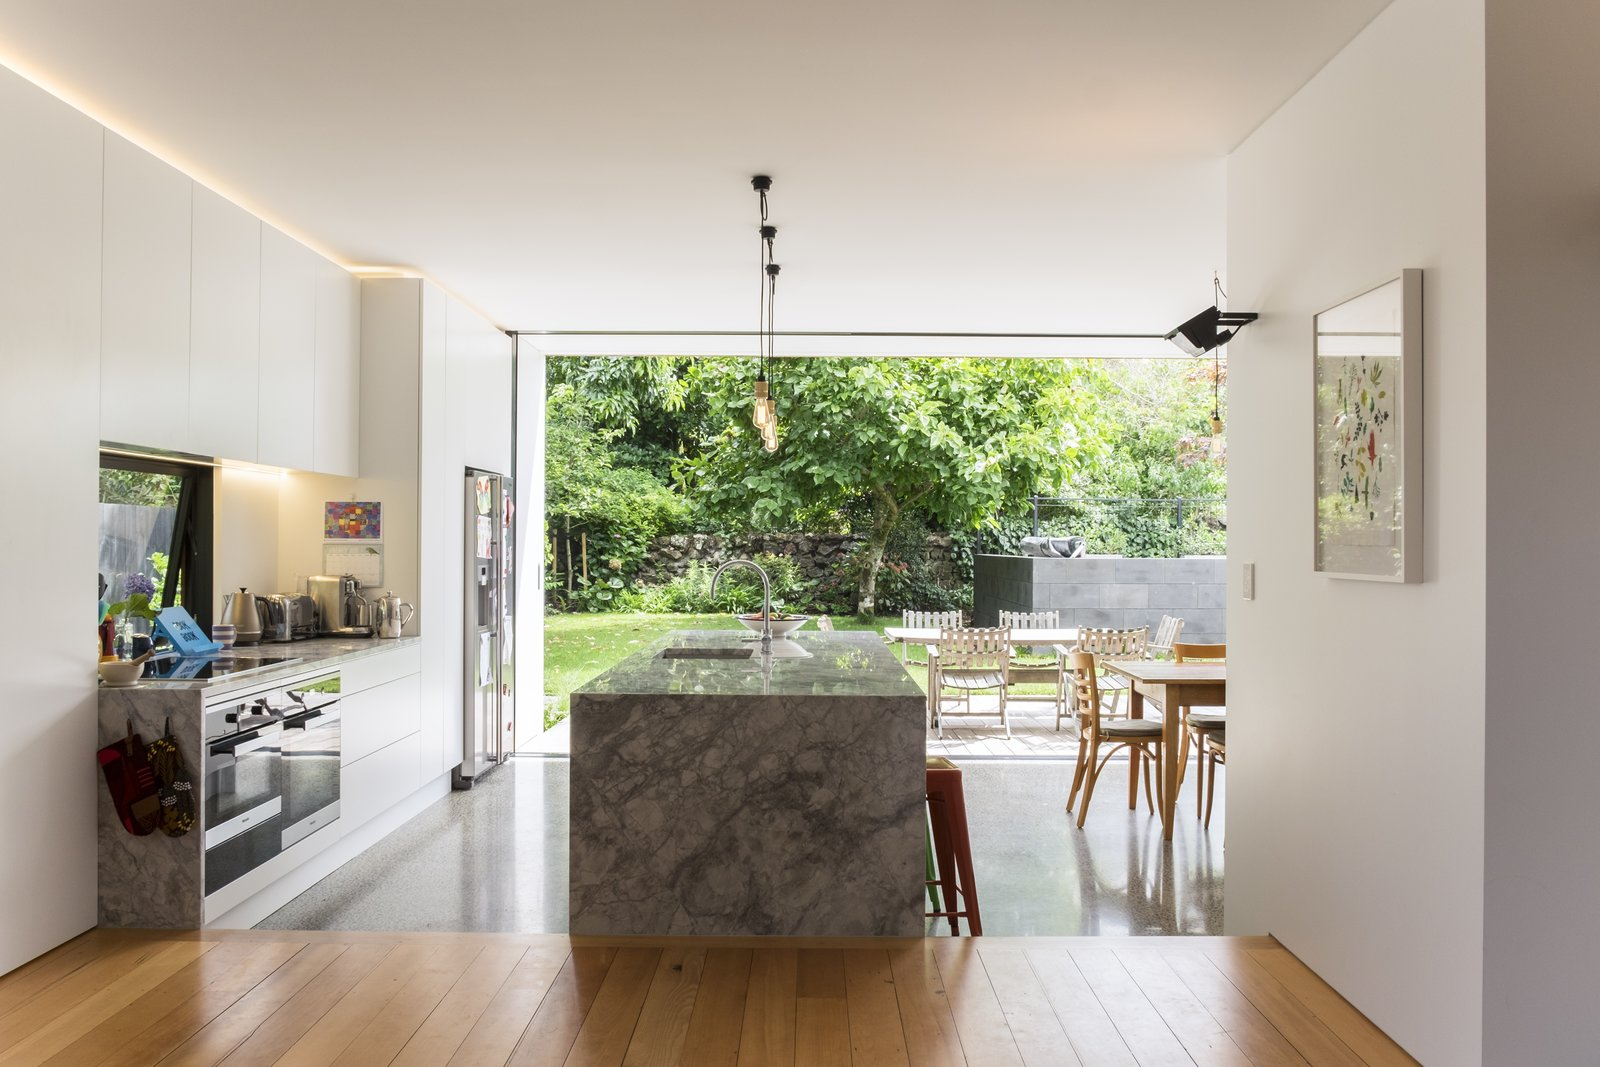 The new interiors are open-plan, but loosely divided into zones of use by rectilinear planes and volumes that accommodate the kitchen and other storage.